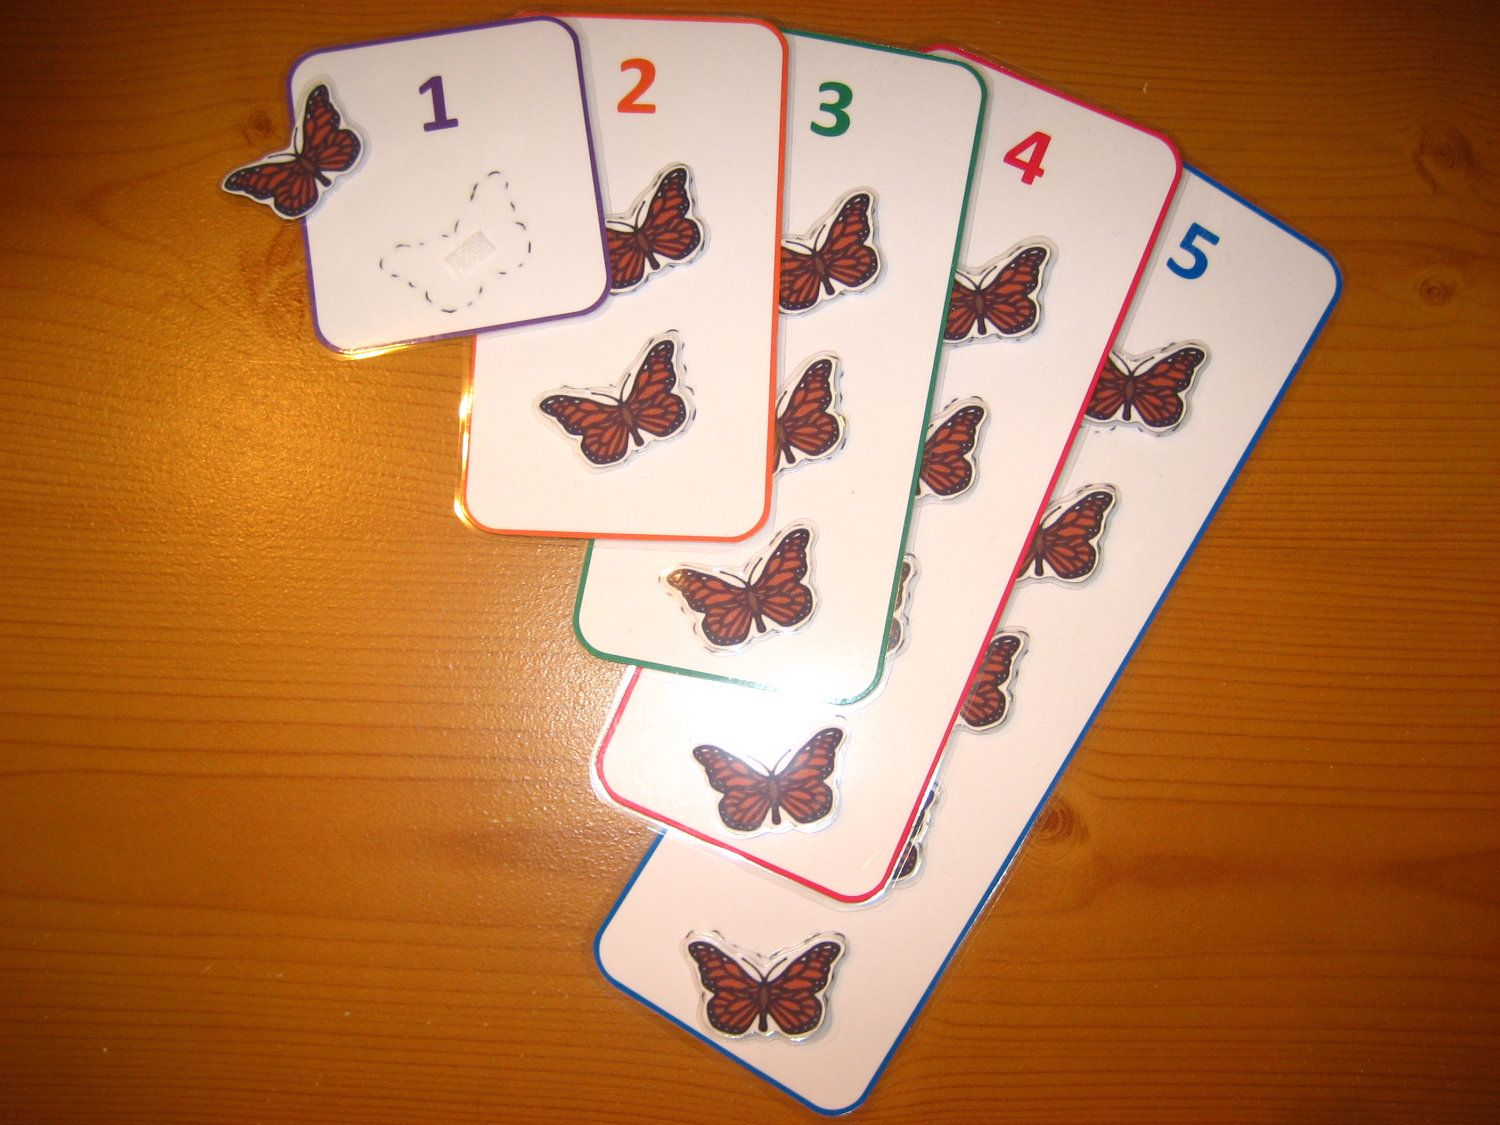 Butterflies Counting Printable File Folder Game 5 By